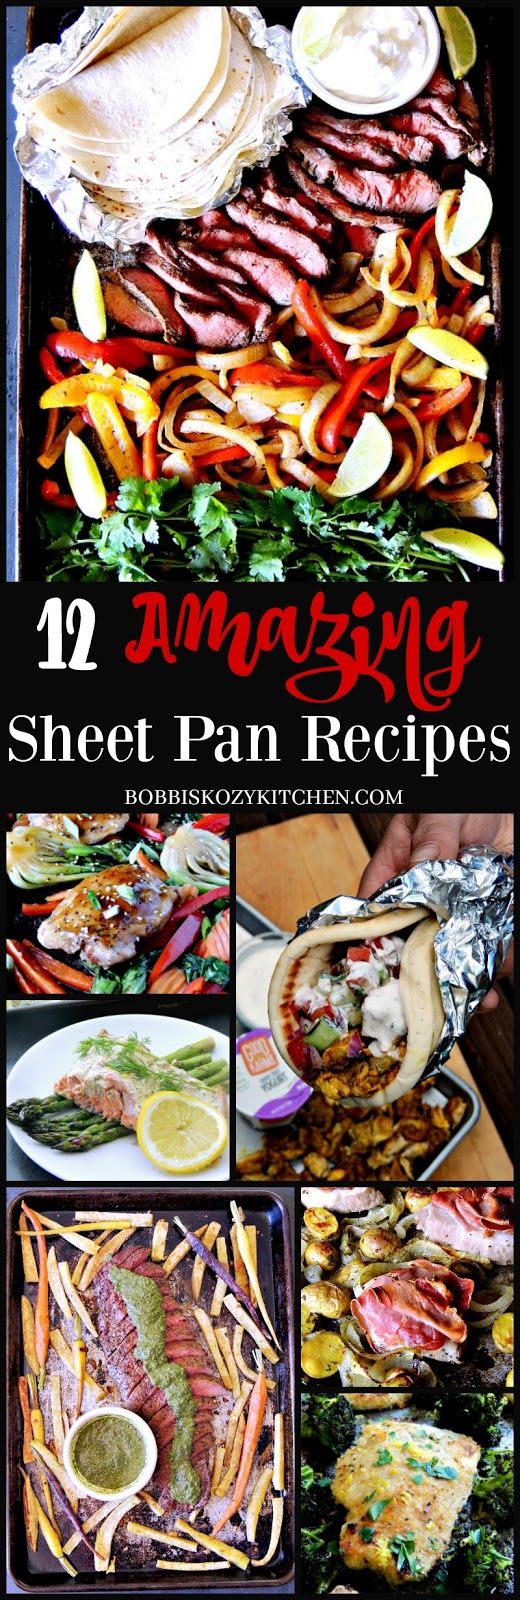 12 Amazing Sheet Pan Recipes from www.bobbiskozykitchen.com